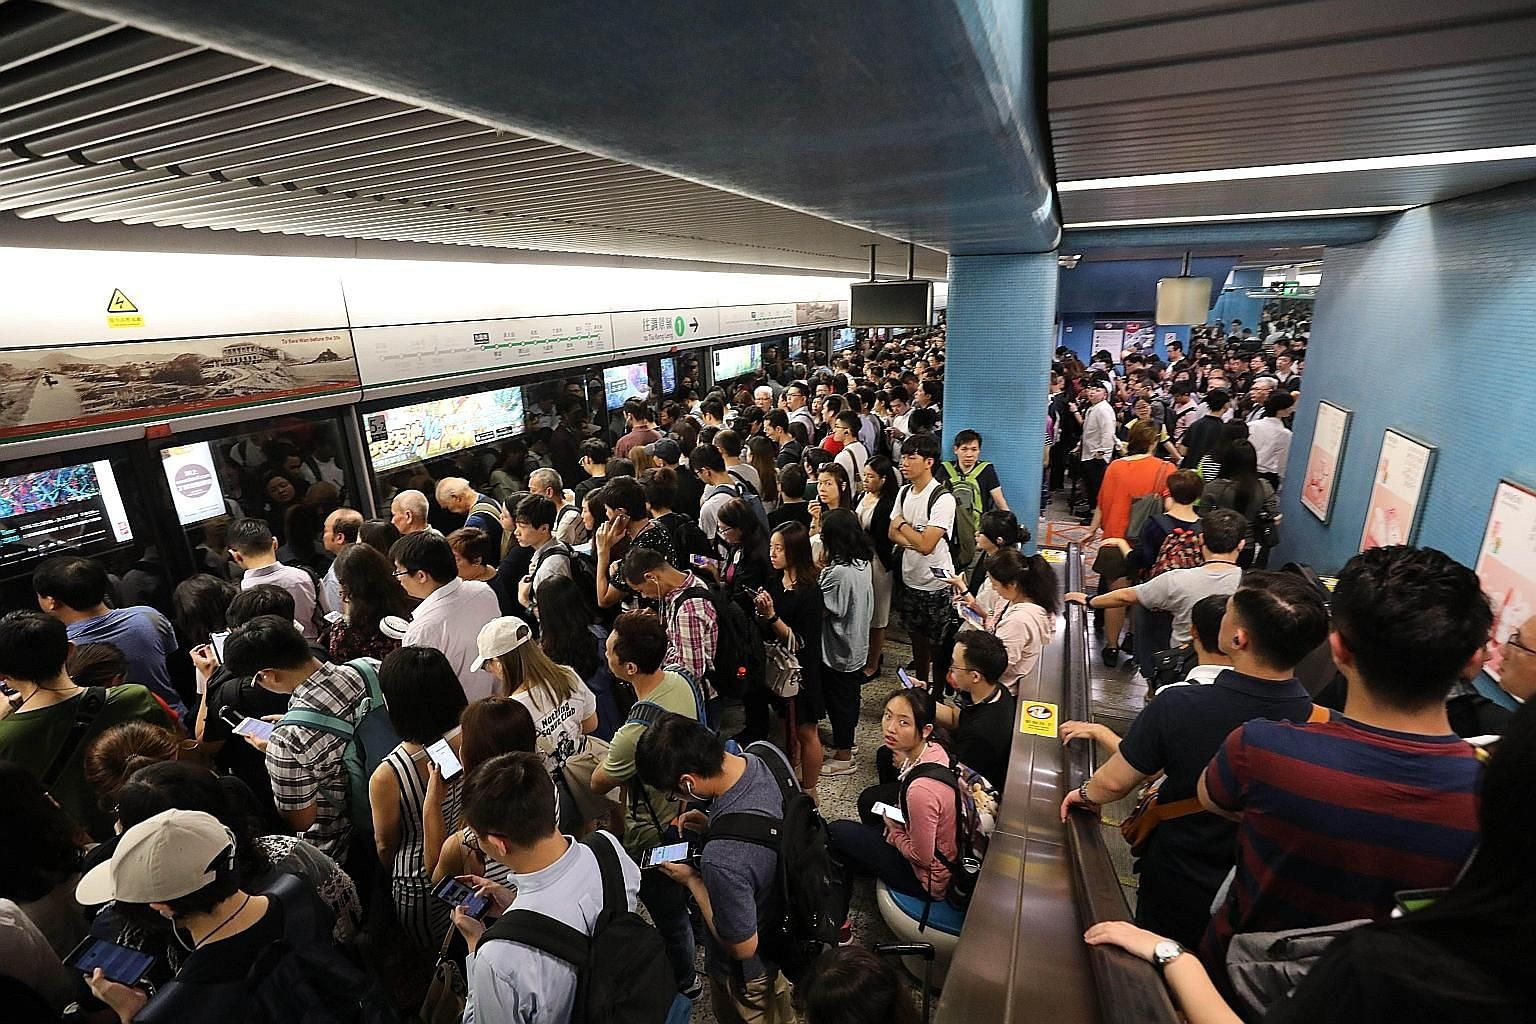 Train services on the four major lines of Hong Kong's MTR, which serves over four million passengers daily, were disrupted for up to six hours on Oct 16.